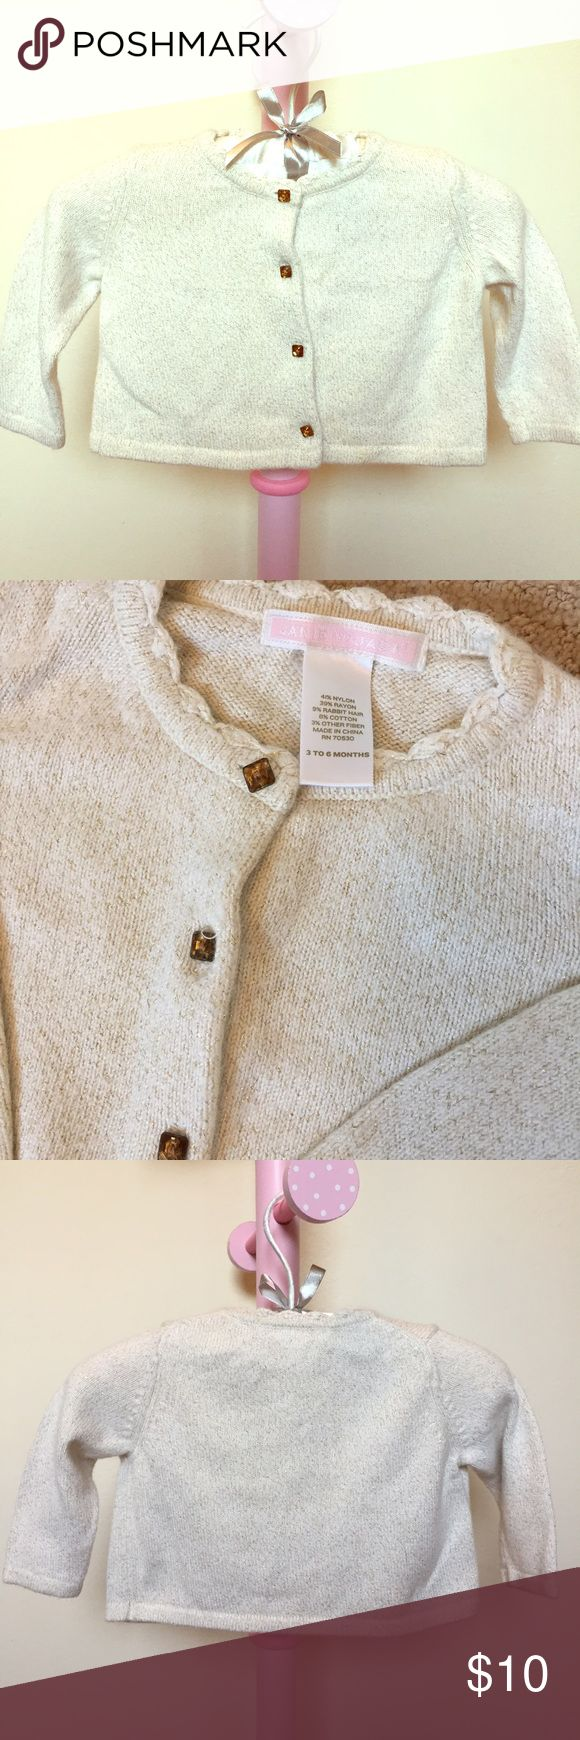 Janie & Jack Infant Girl's Gold Cardigan 3-6 Mo Versatile piece to accompany any holiday ensemble! Cream cardigan with golden flecks and amber buttons. Super soft. Size 3-6 months. Janie and Jack Shirts & Tops Sweaters